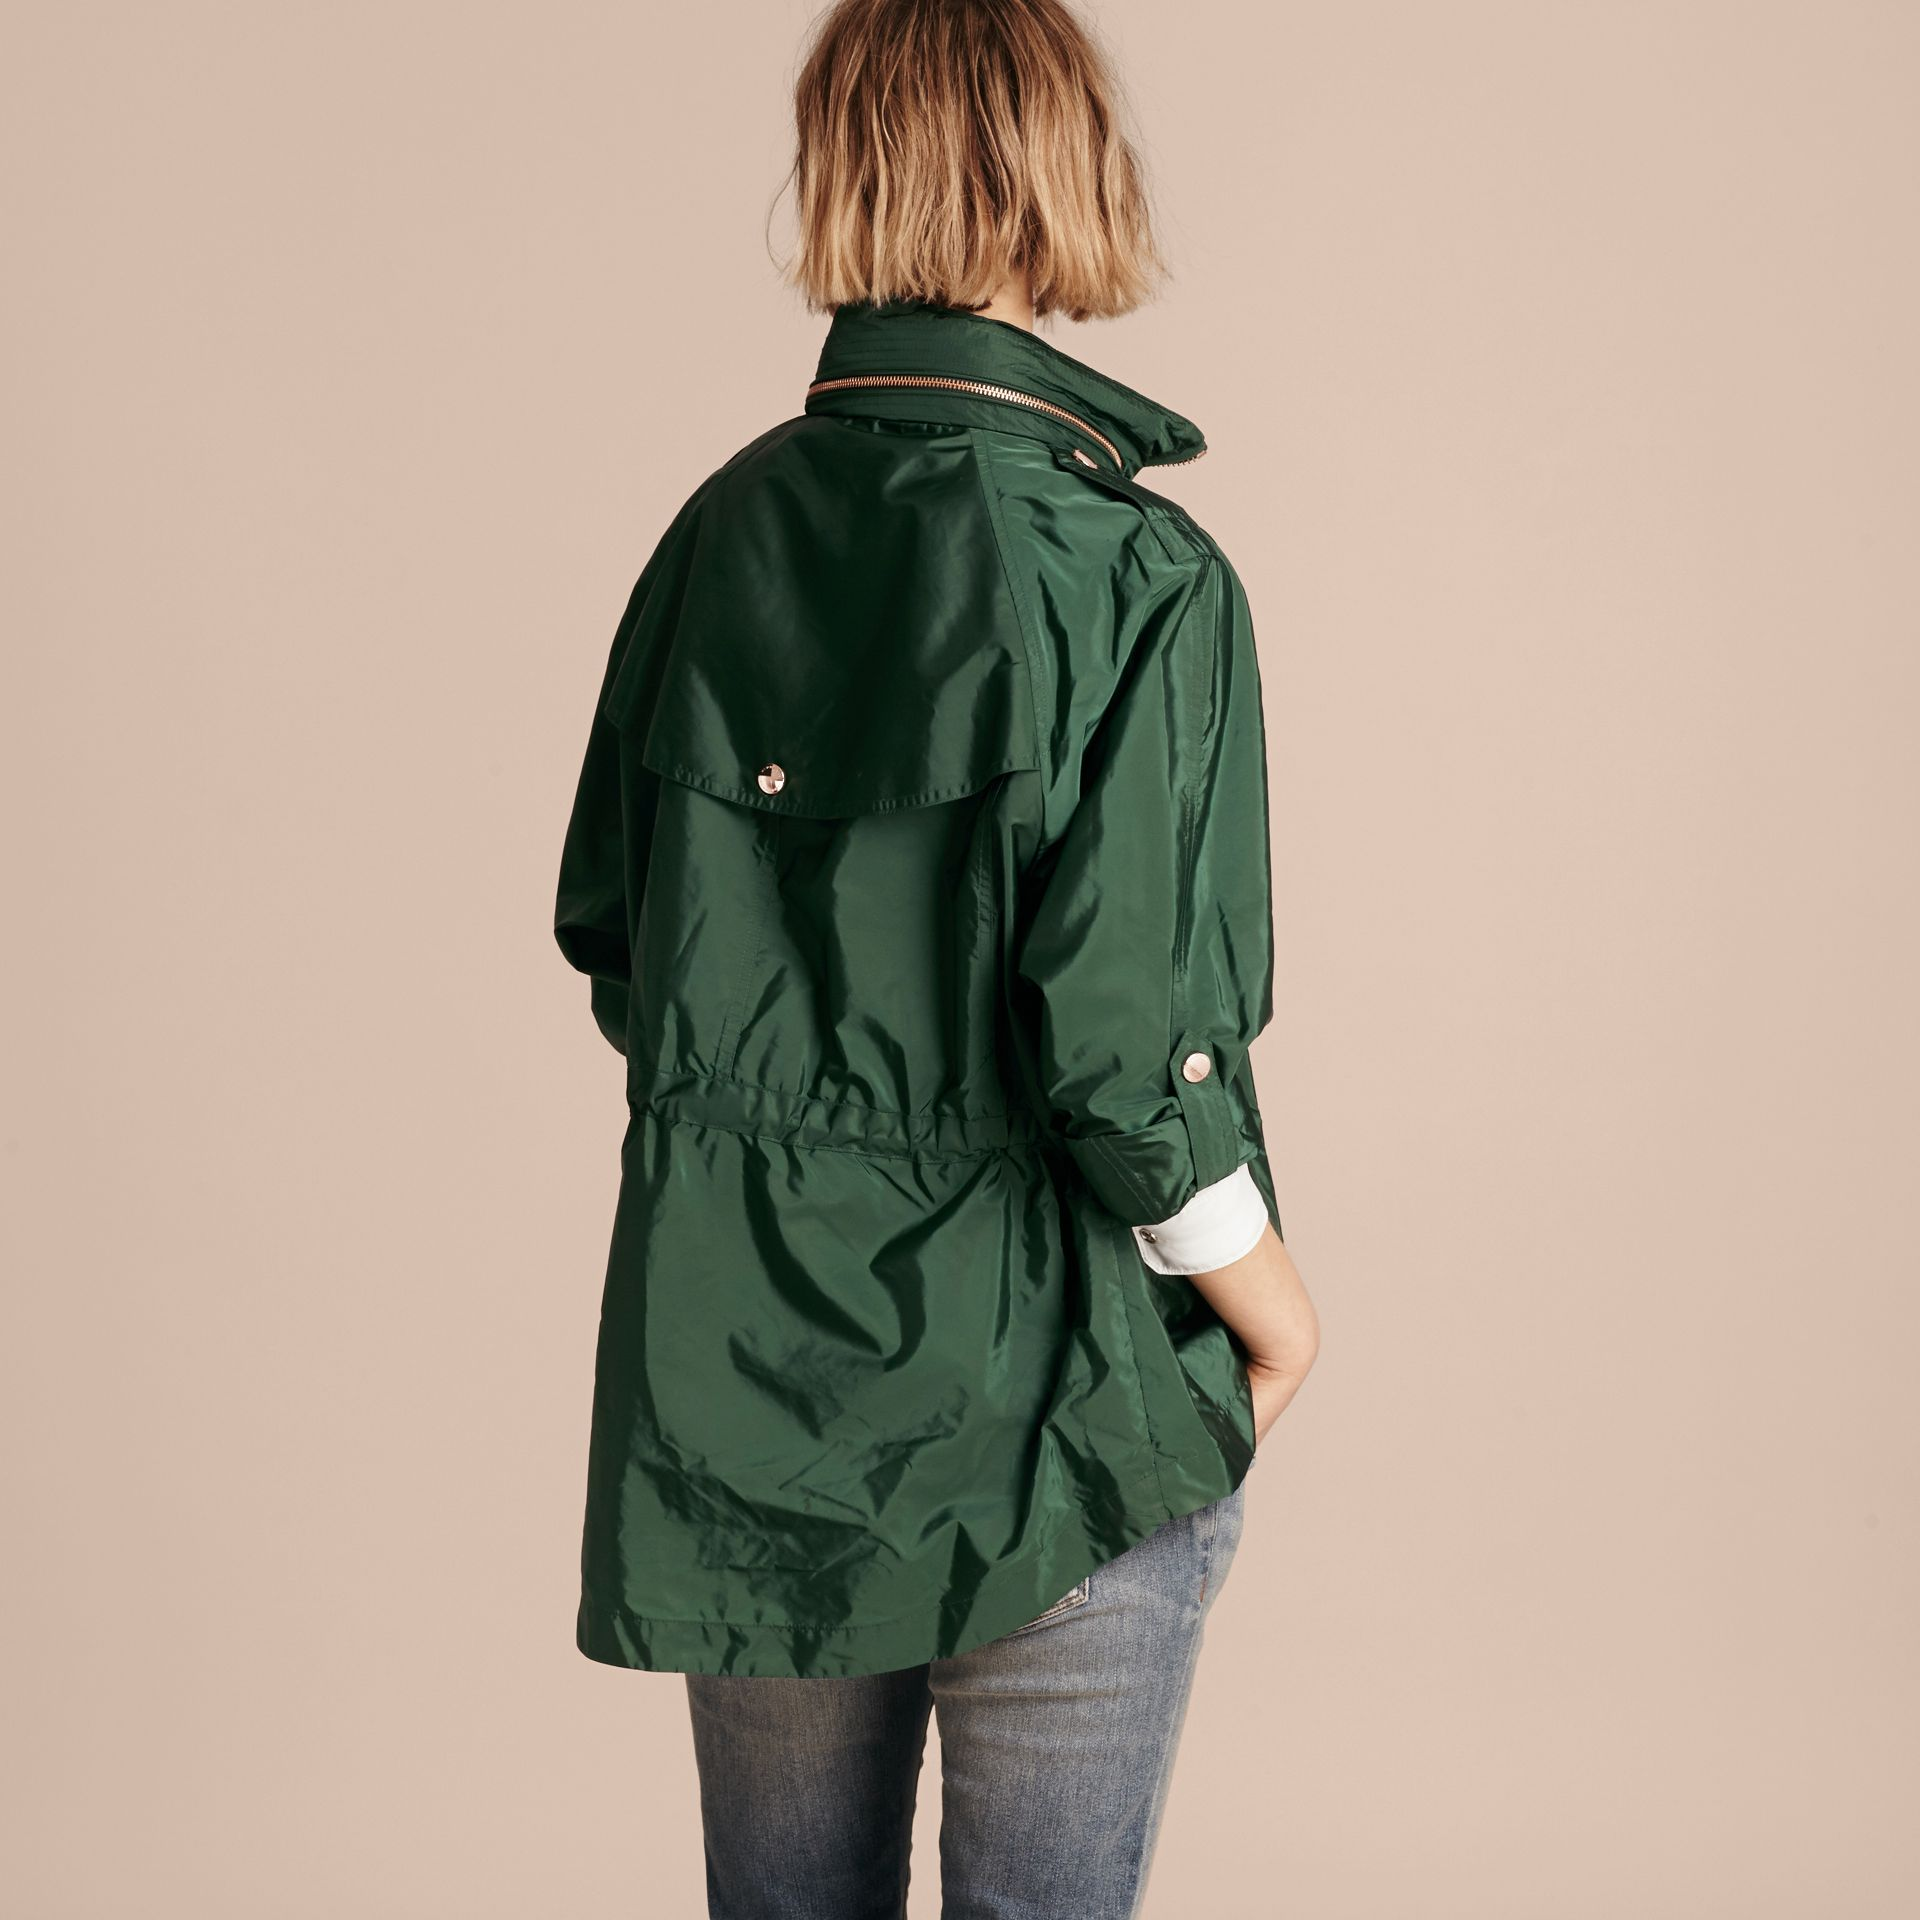 Deep bottle green Showerproof Parka Jacket with Packaway Hood Deep Bottle Green - gallery image 3